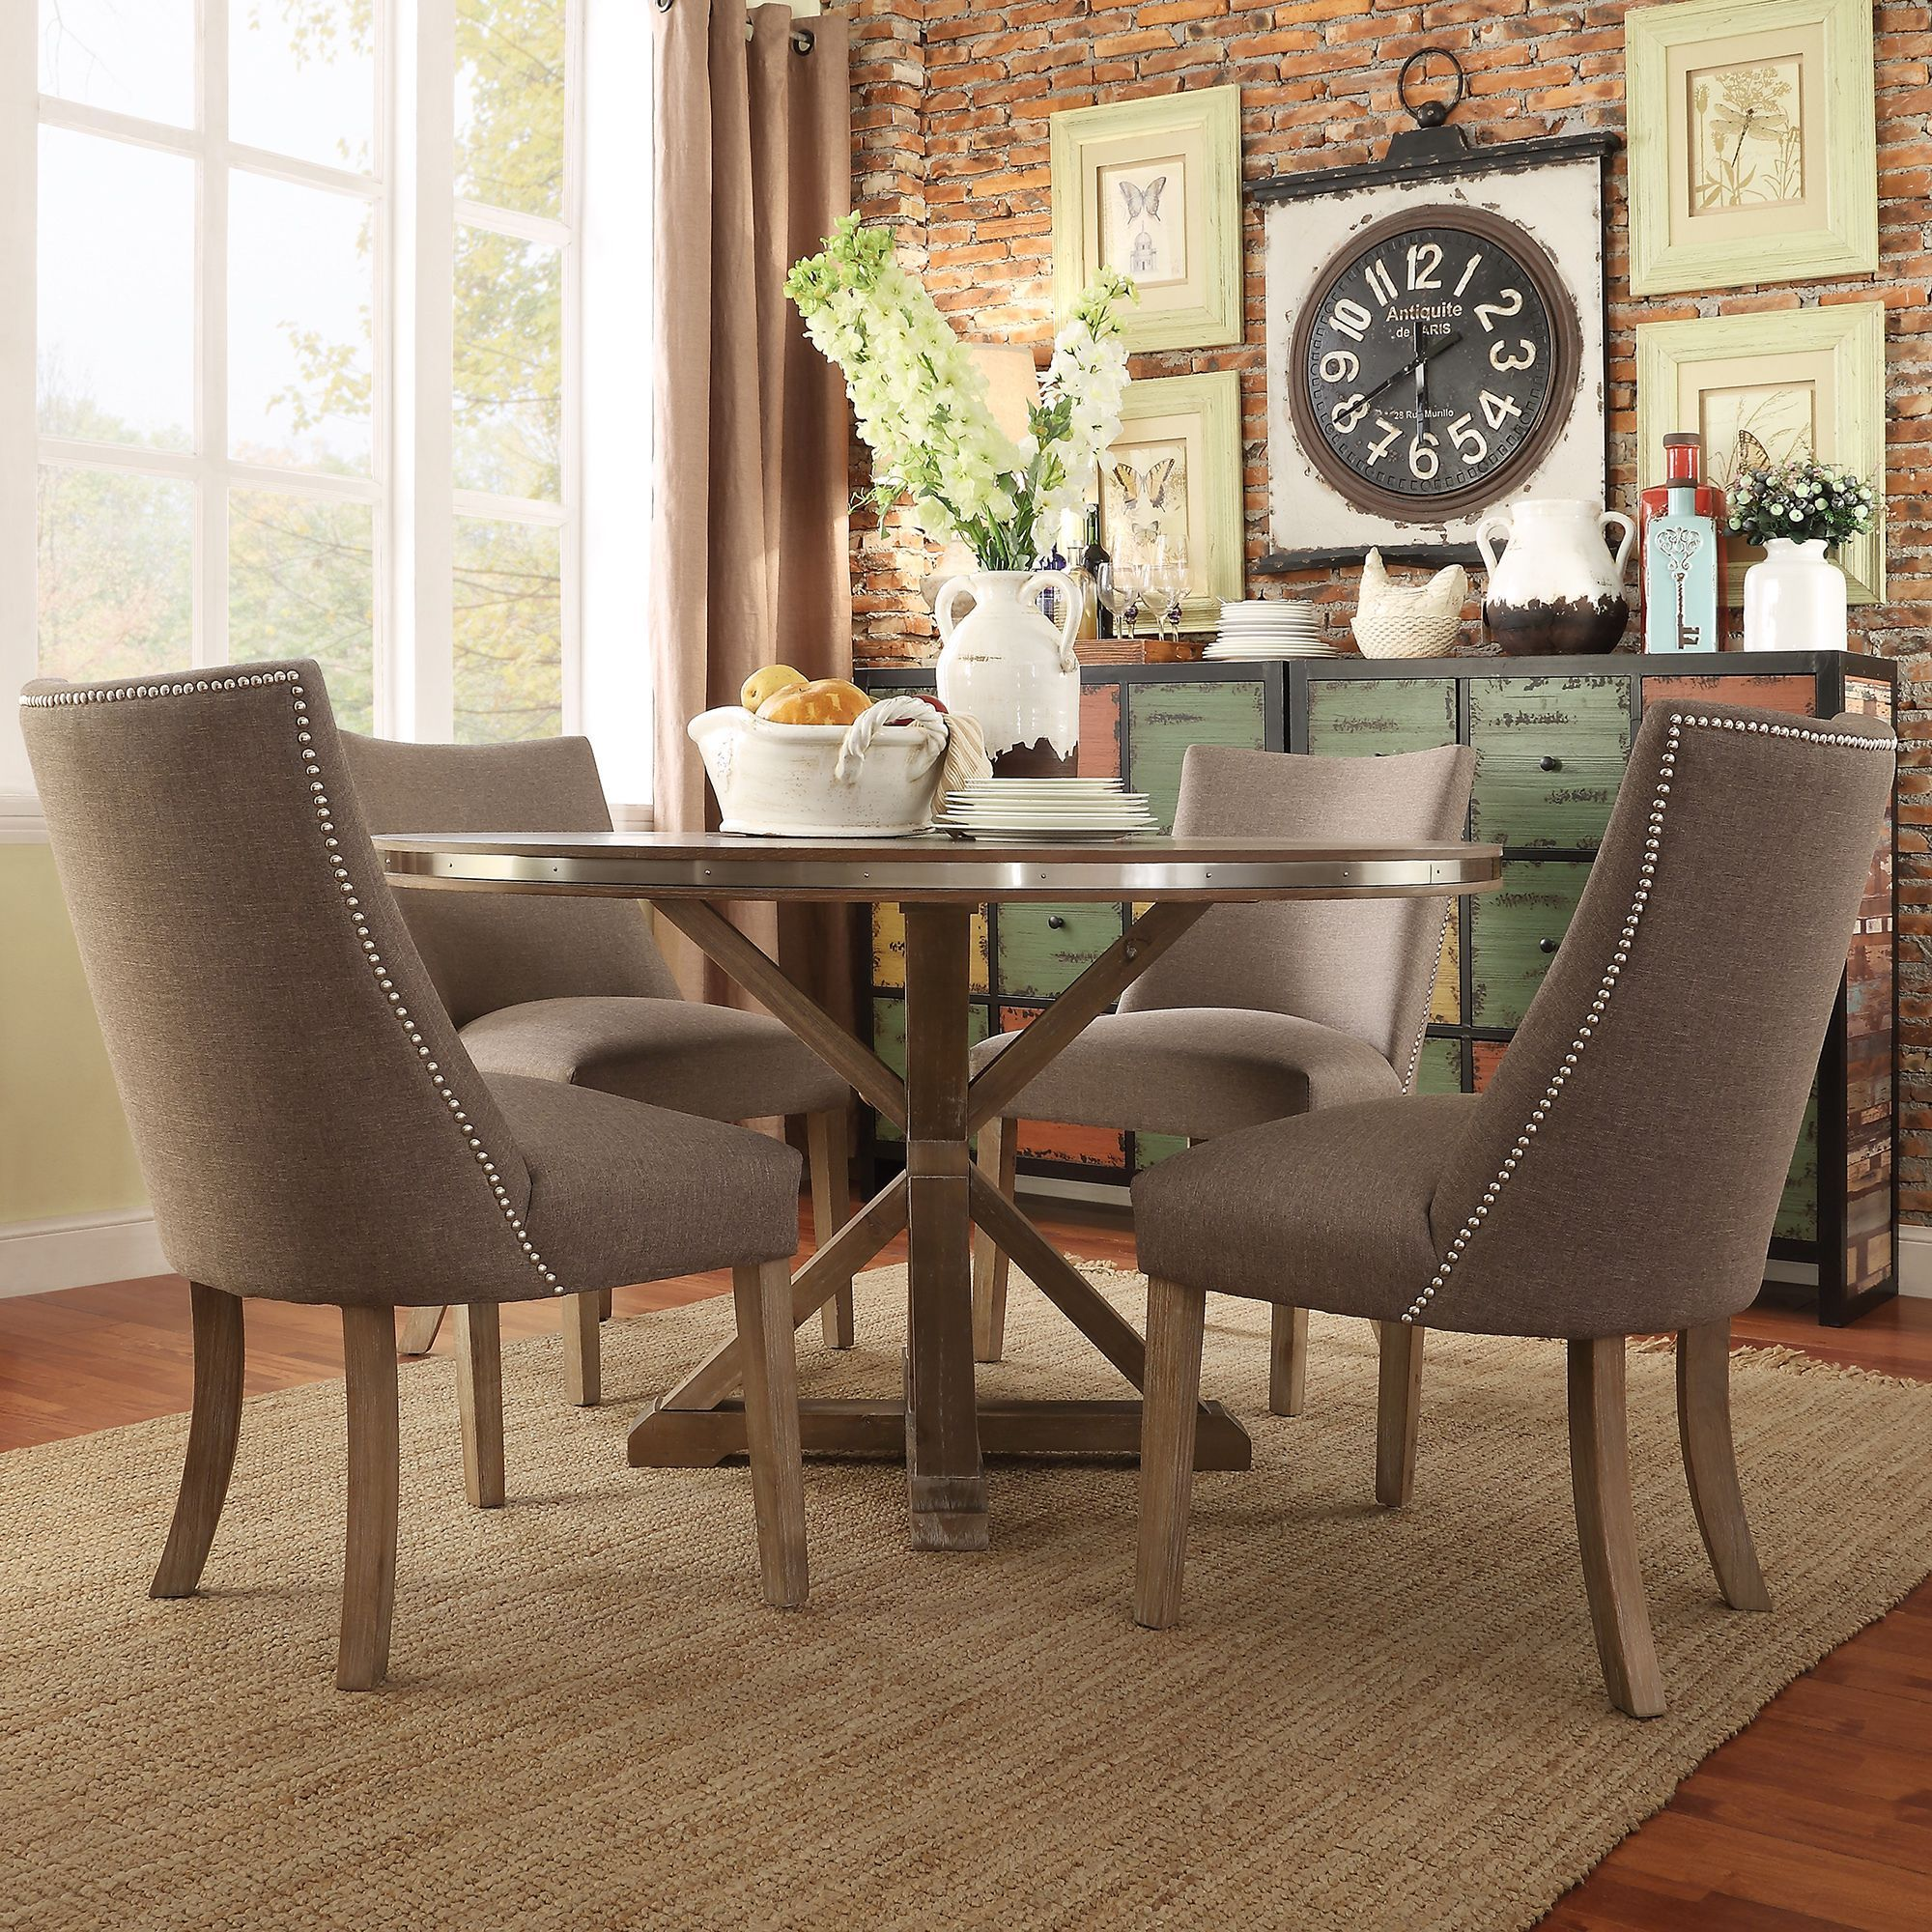 Shop Luxurious Modern Design Stainless Steel Dining Set: Abbott Rustic Round Stainless Steel Strap Oak Trestle